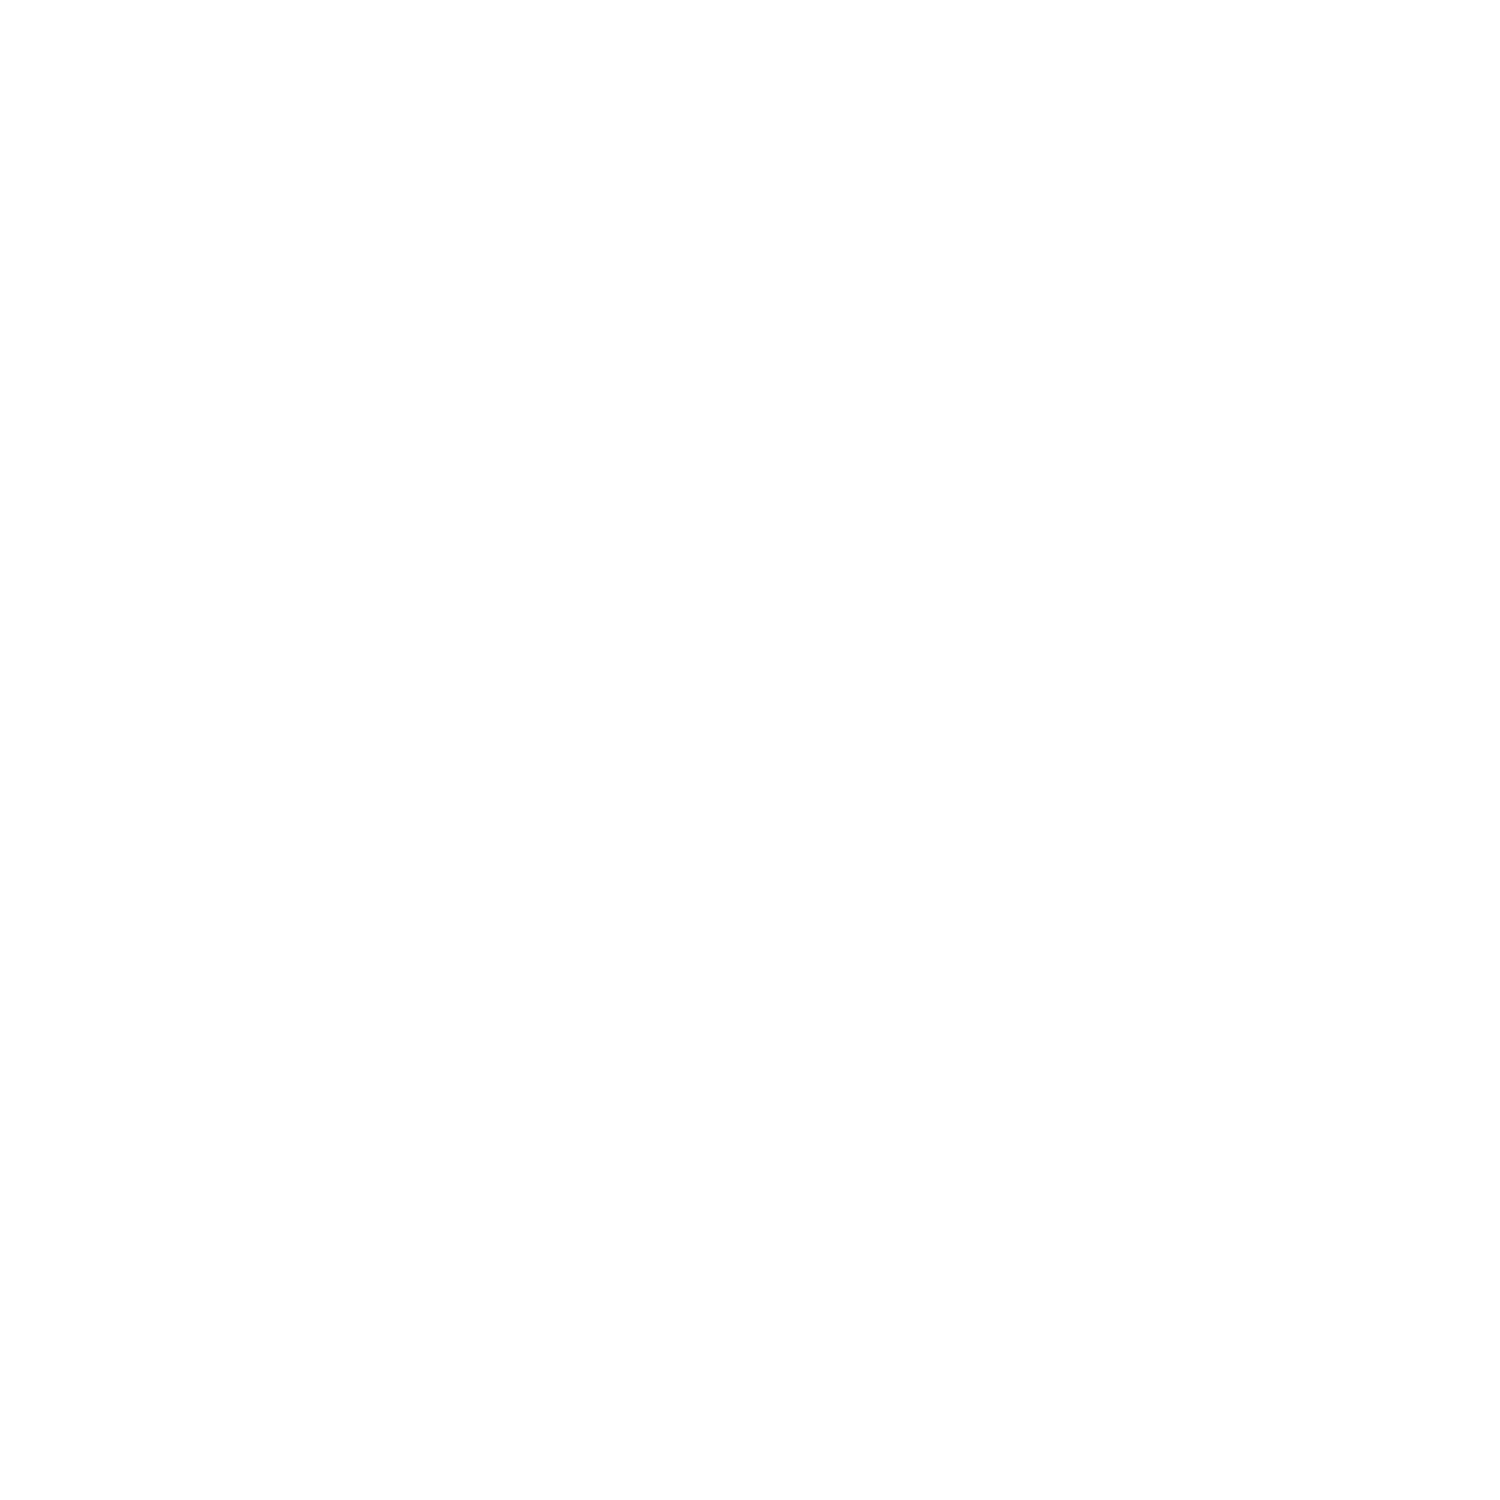 HOMETEAM CREATIVE Co.